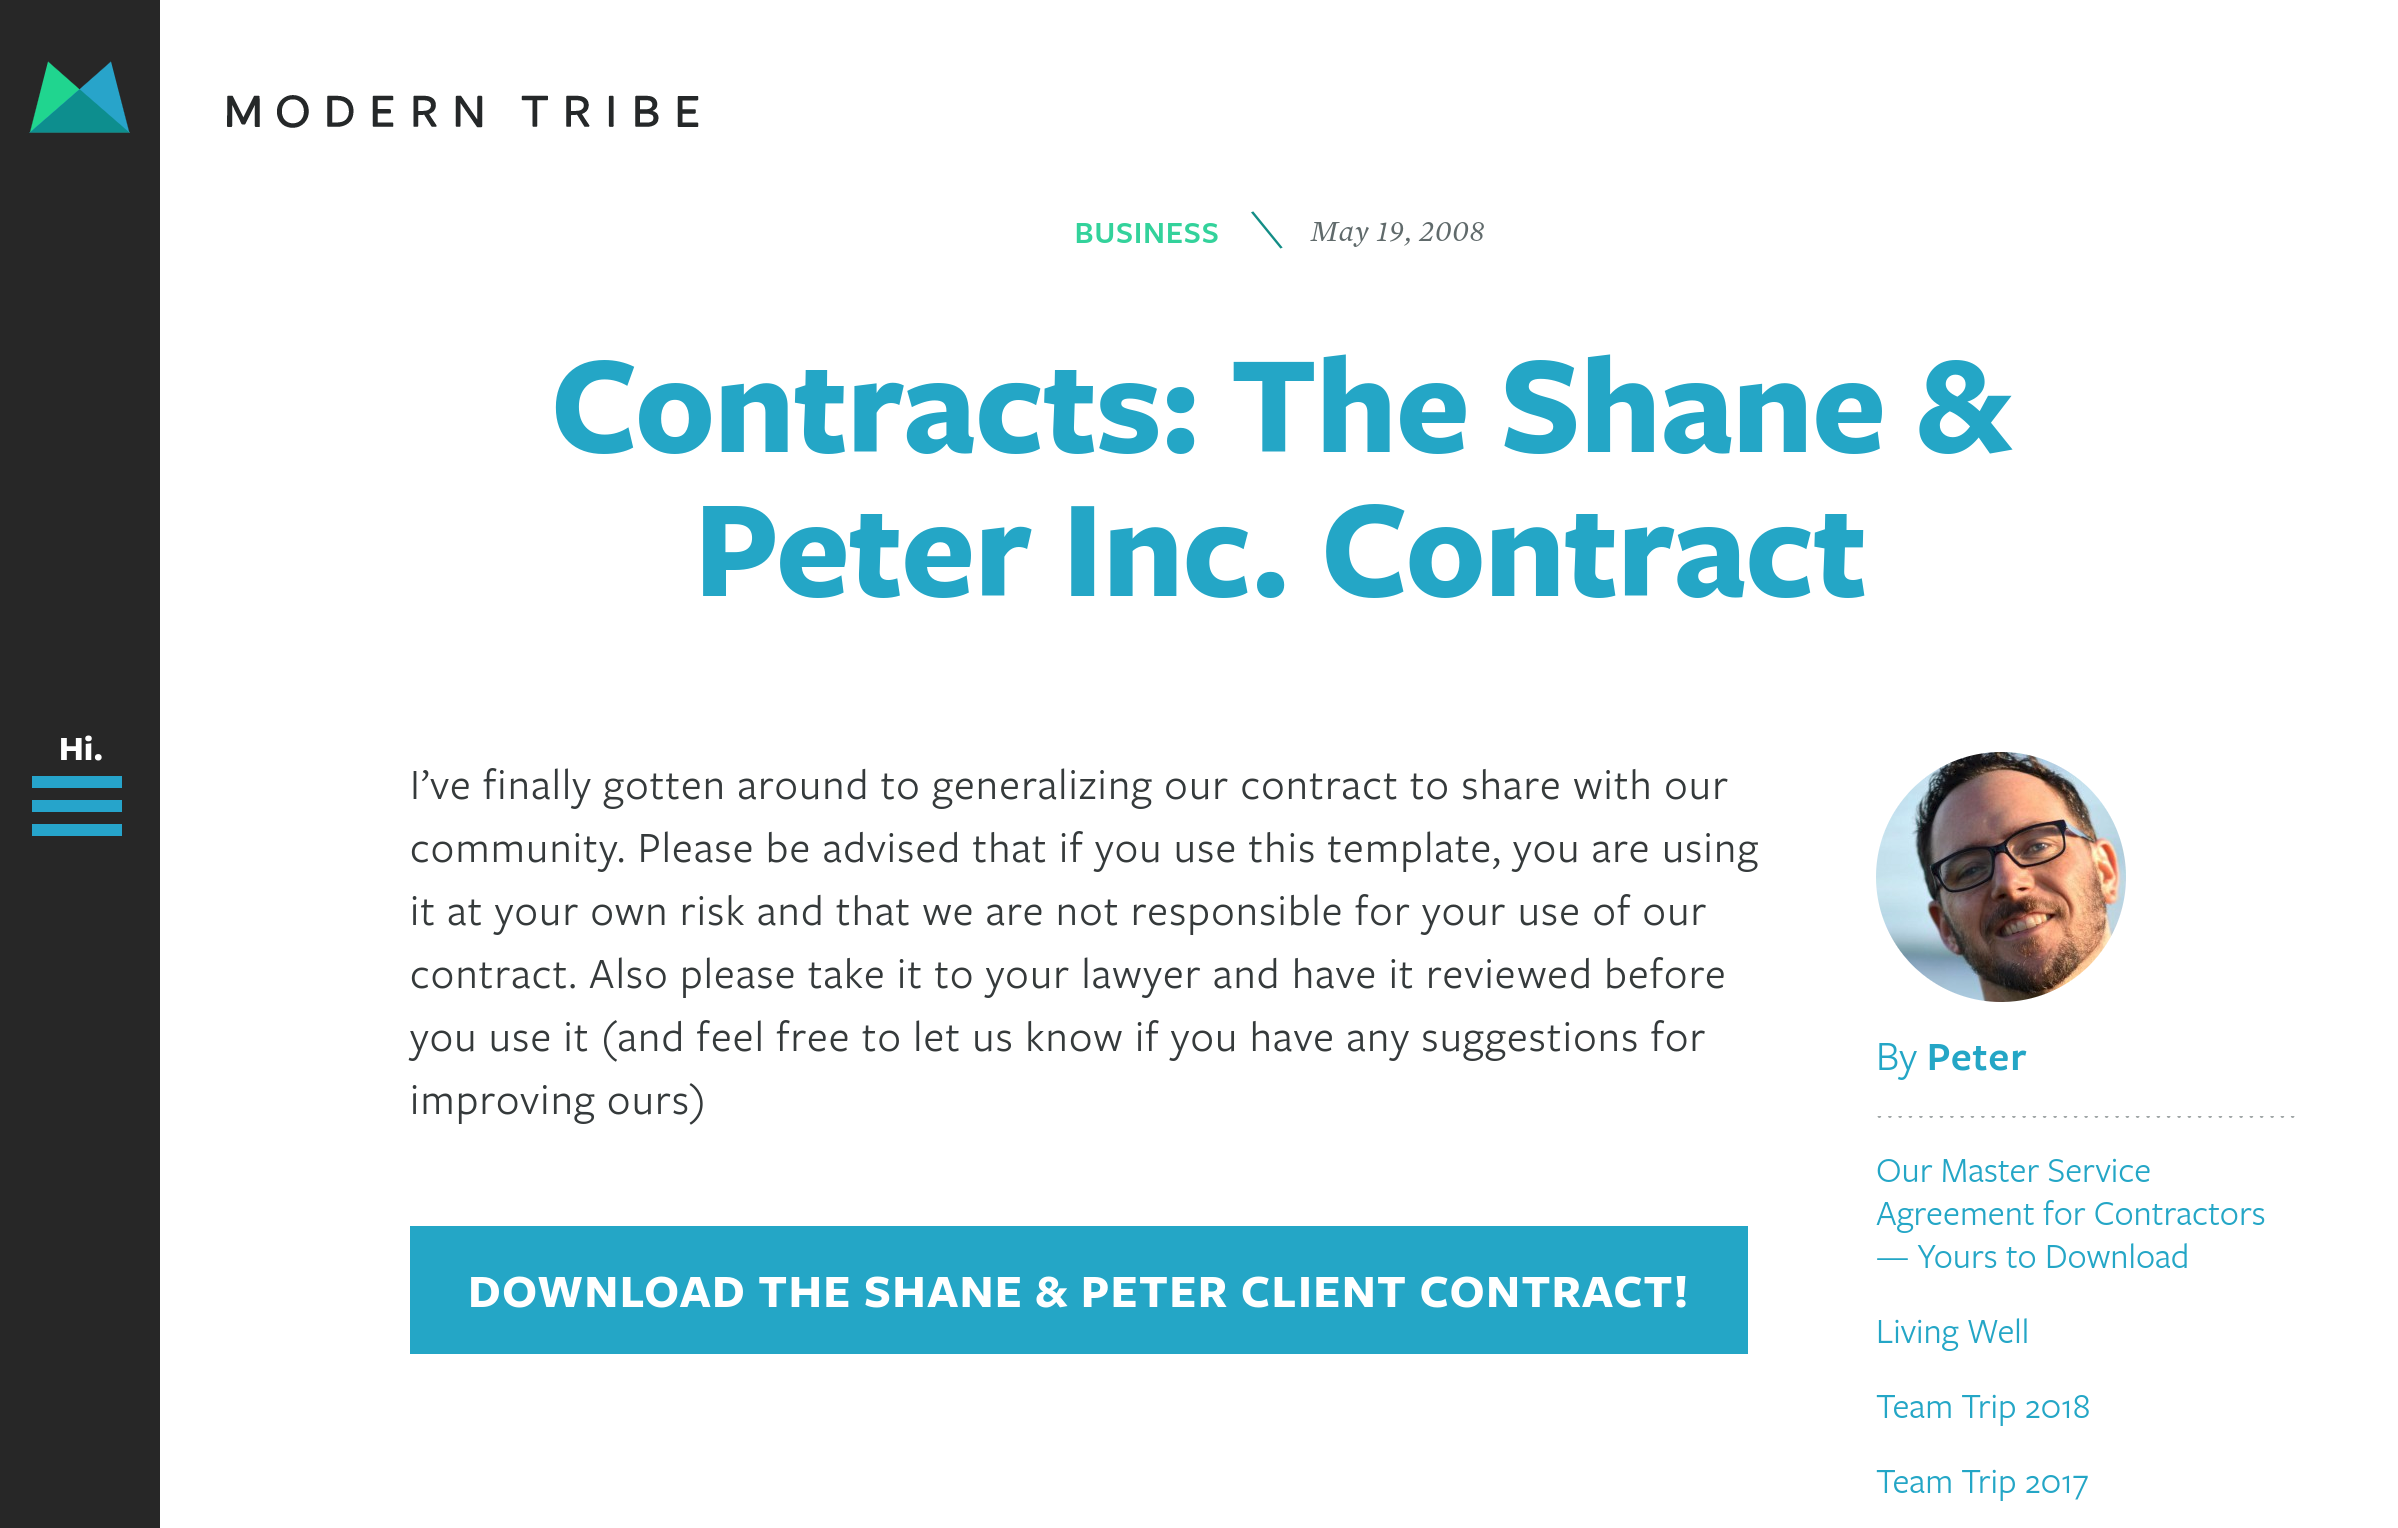 Freelance Web Developer Contract Template from Shane & Peter Inc.